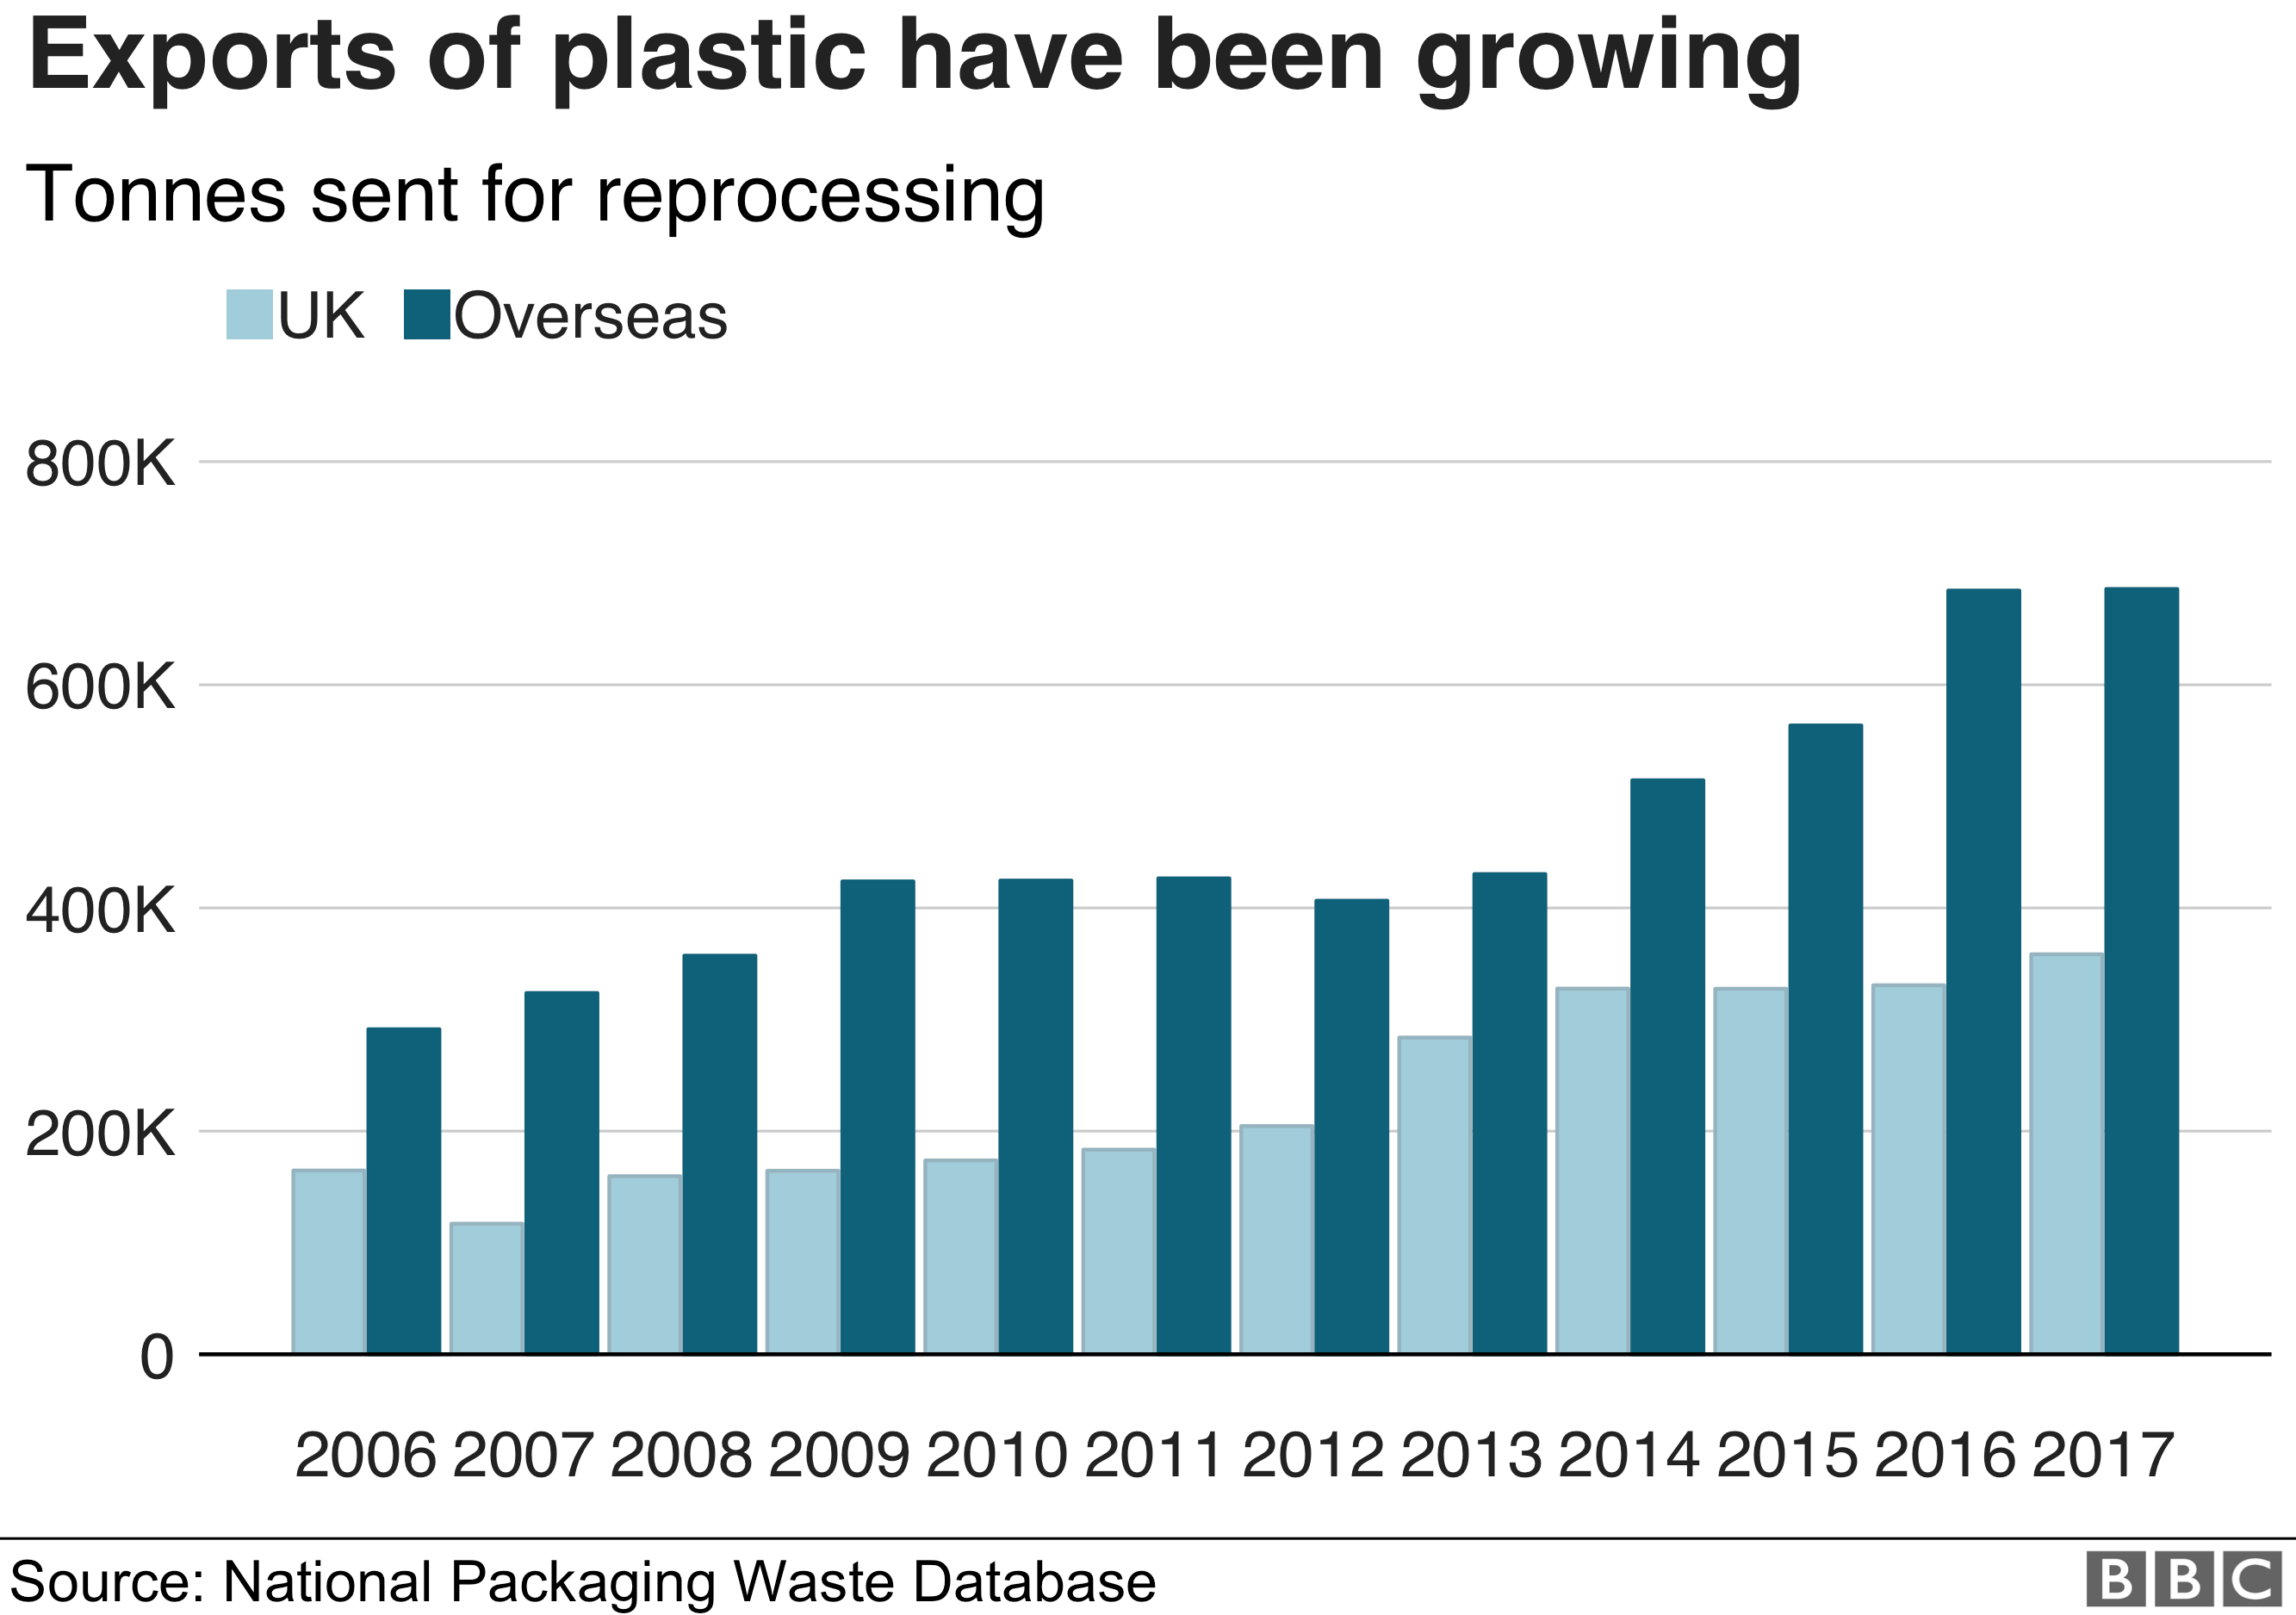 Exports of plastic have been growing